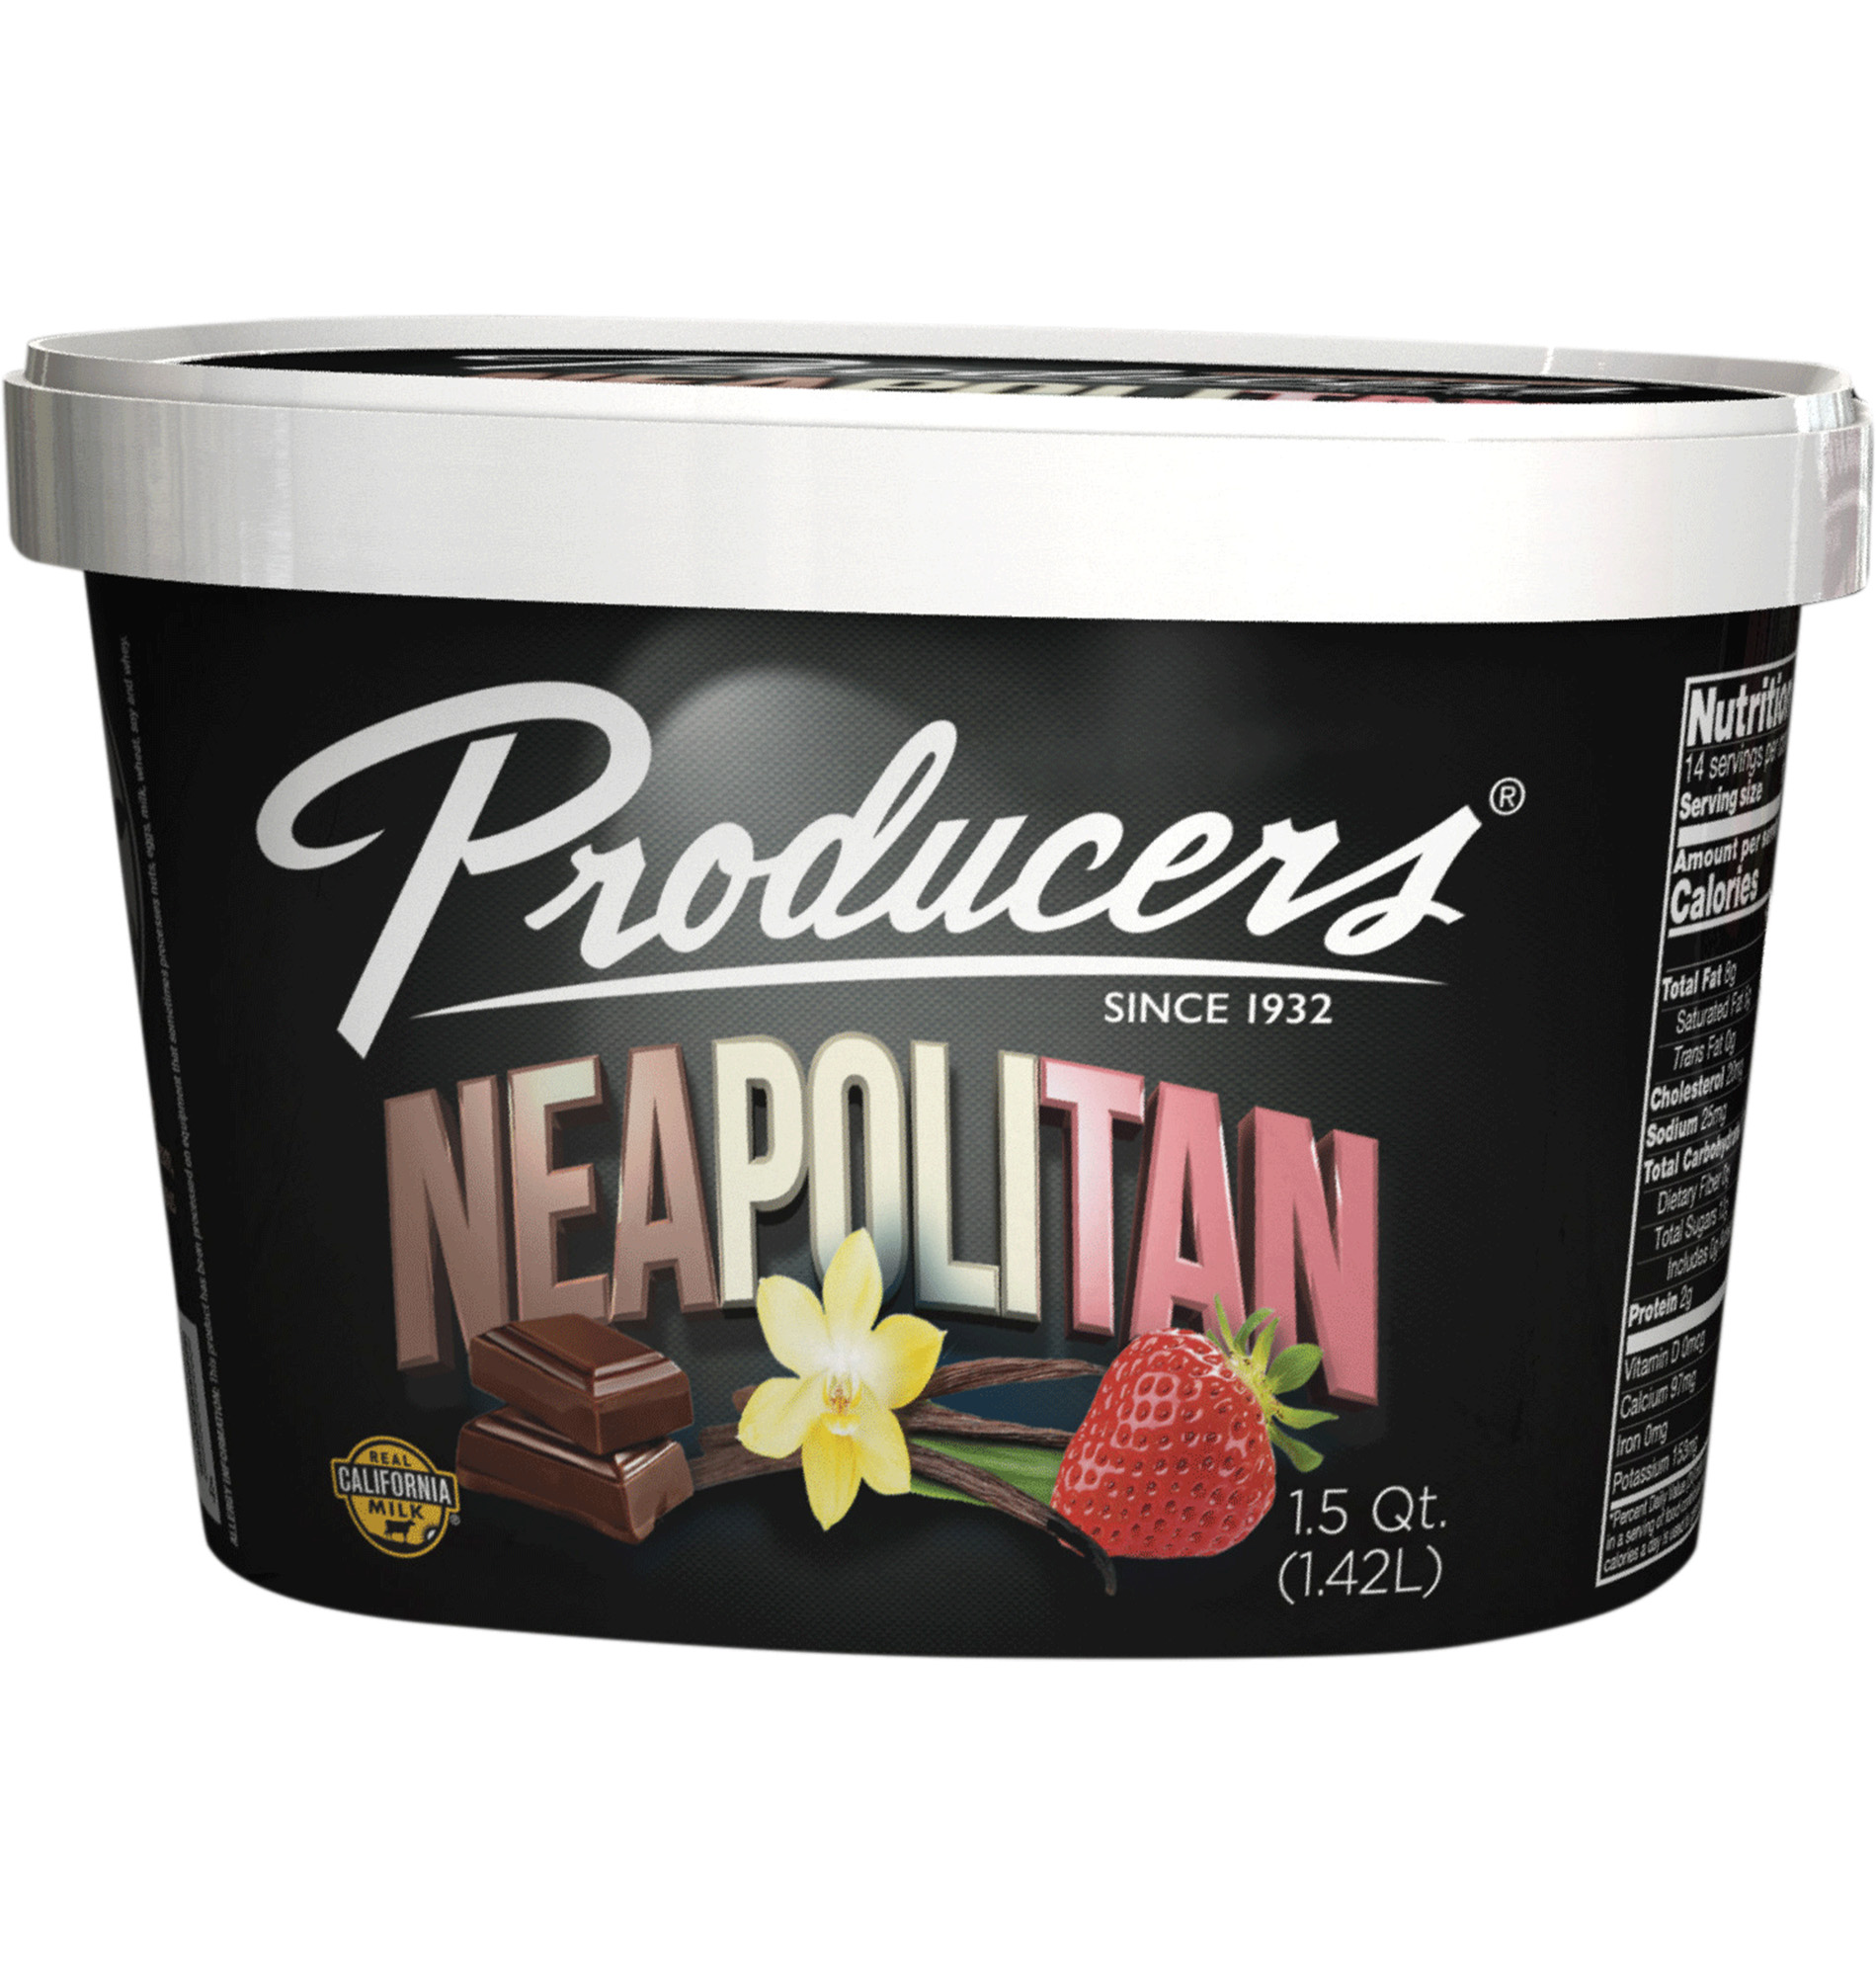 Neapolitan Producers Dairy Ice Cream Container